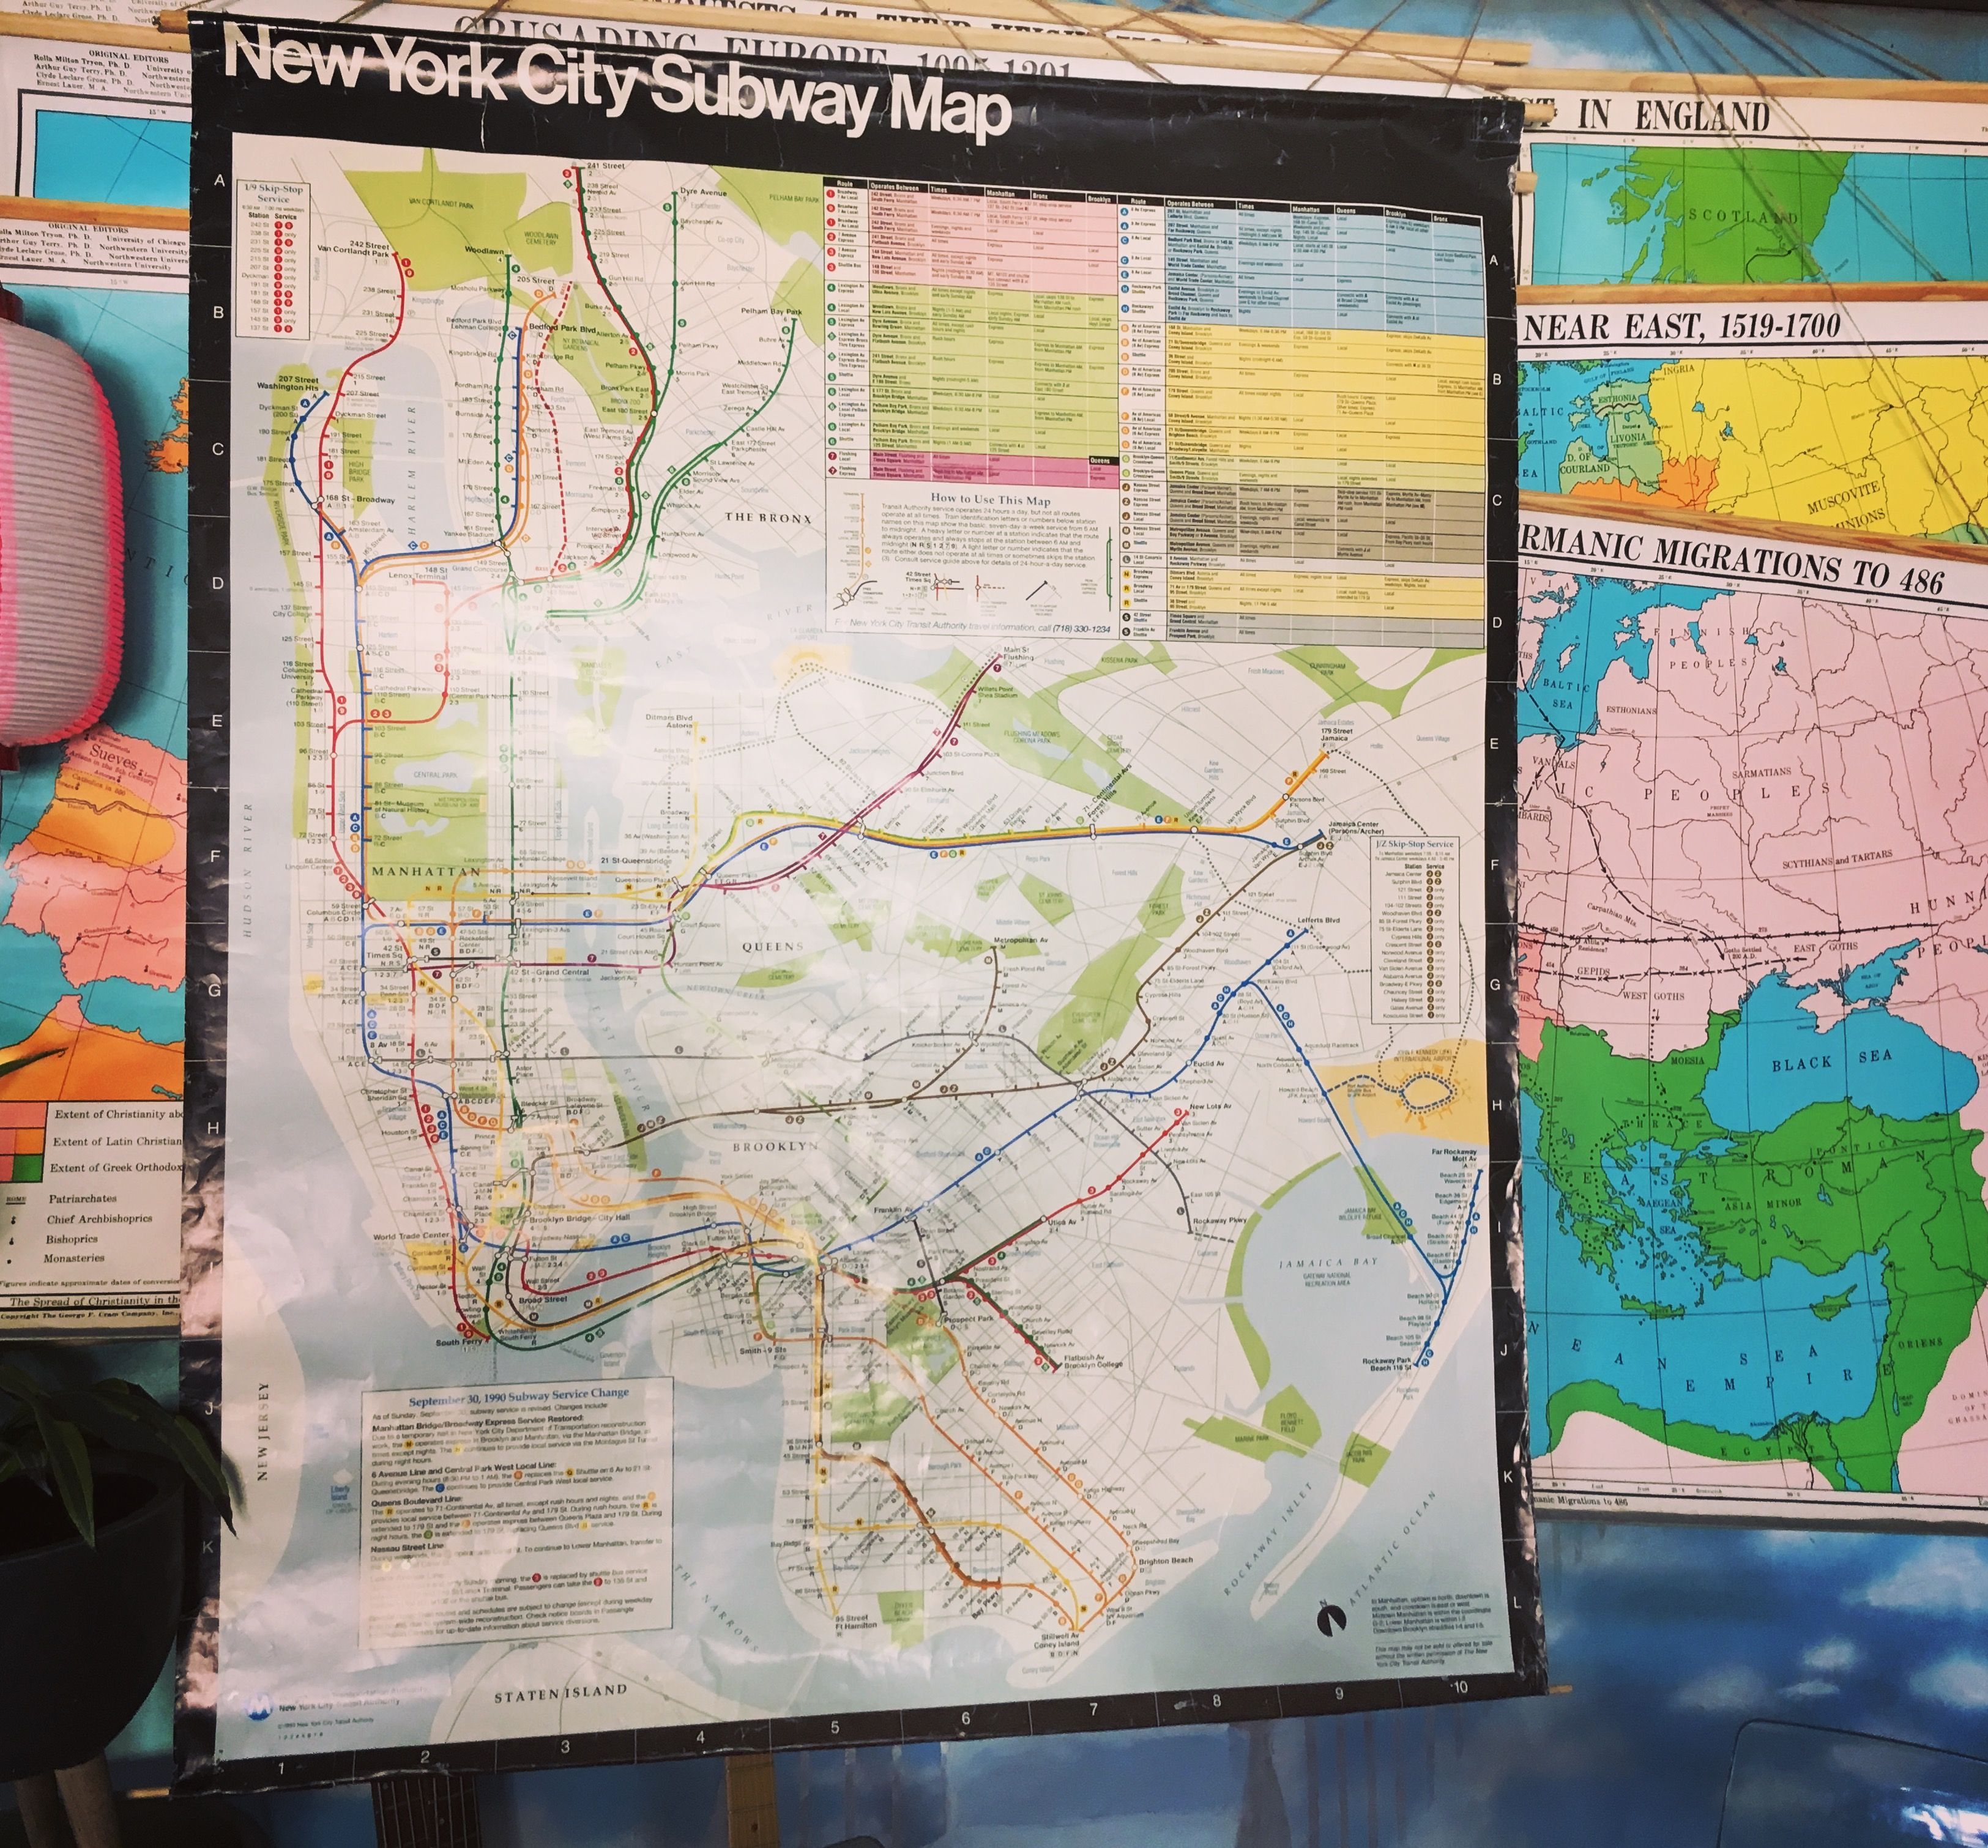 Nyc Subway Map Cards.Pin By Love Vintage Life On Globes And Maps Nyc Subway Map Nyc